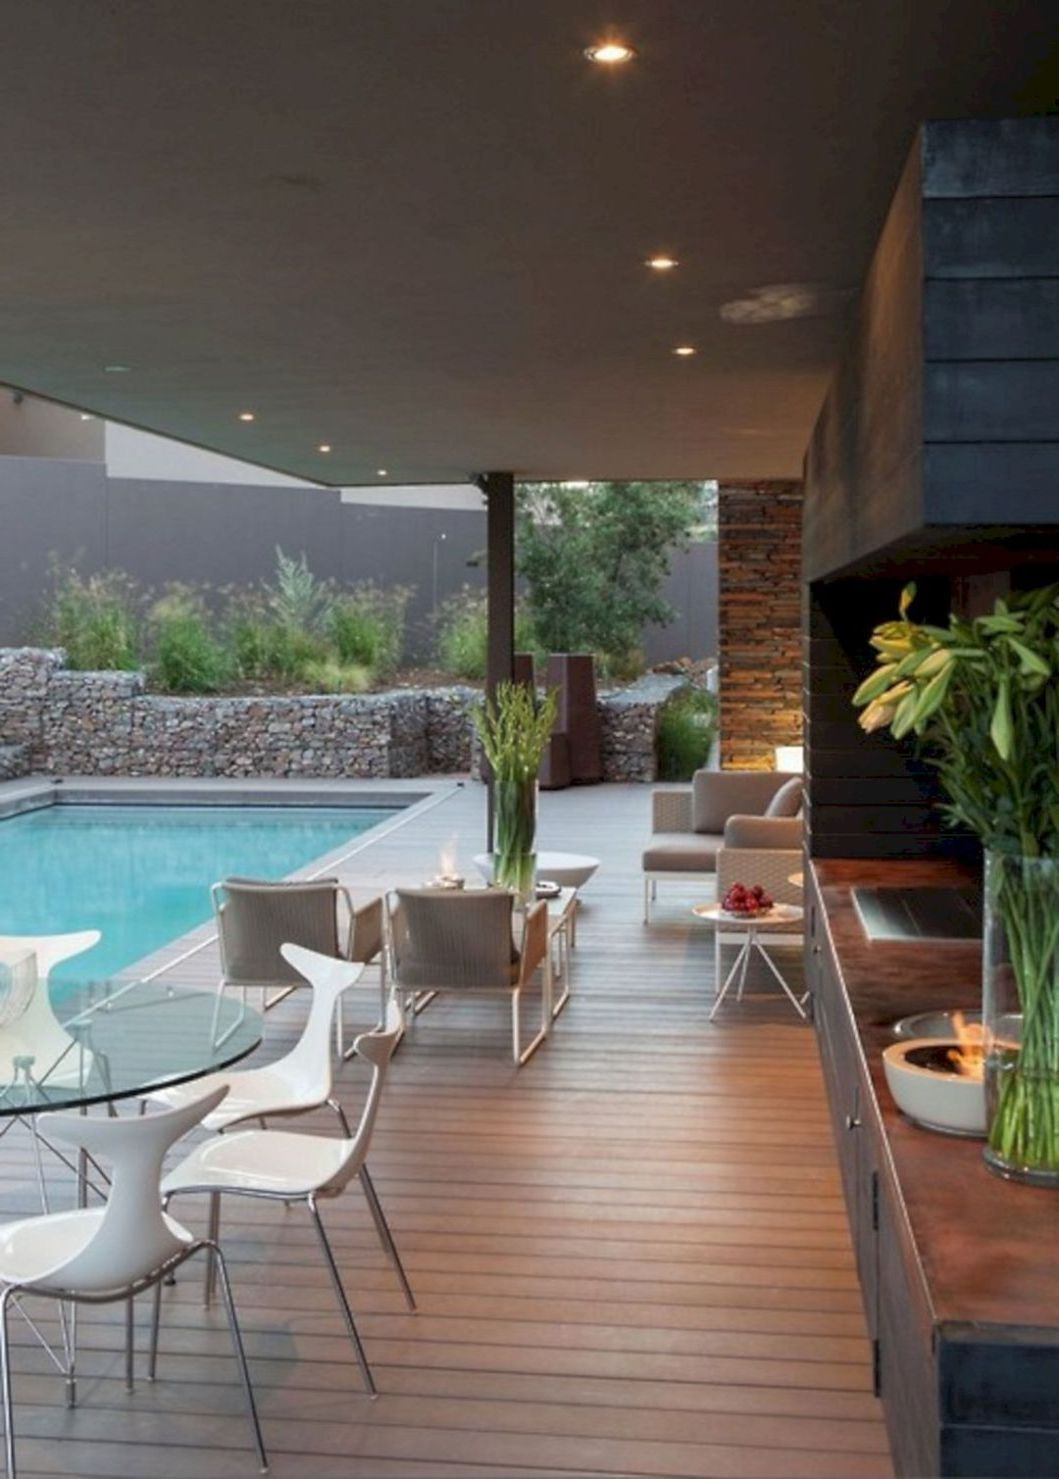 Amazing Pool Ideas Perfect For Small Backyards Decor Around The World Pool Decor Outdoor Design Outdoor Pool Decor